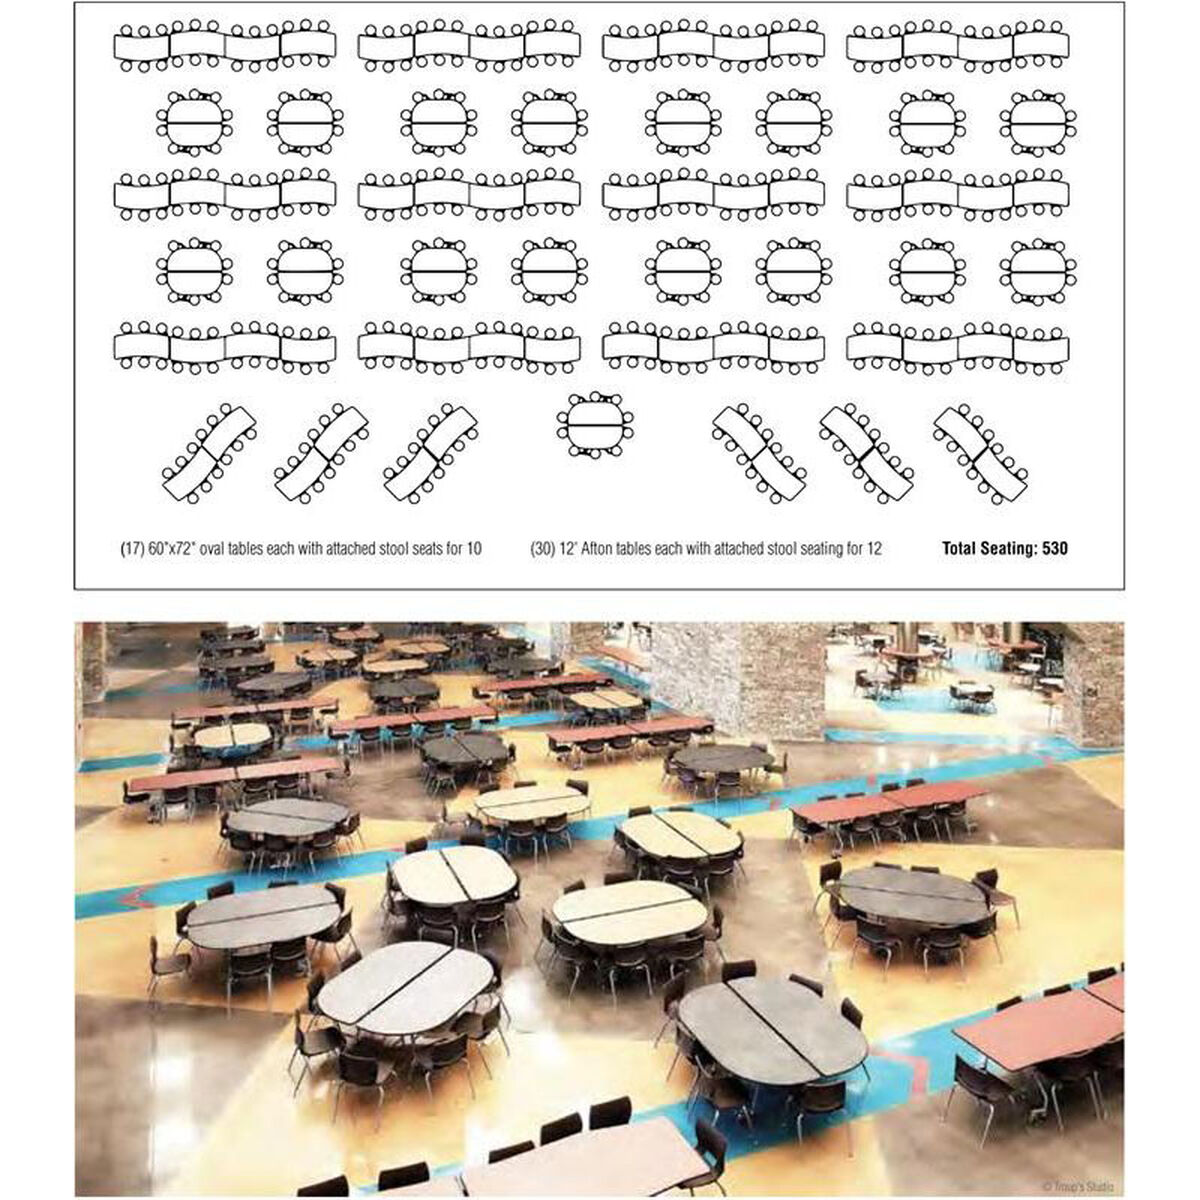 Biofit afton edgescape foldable cafeteria table with 12 for 120 round table seats how many